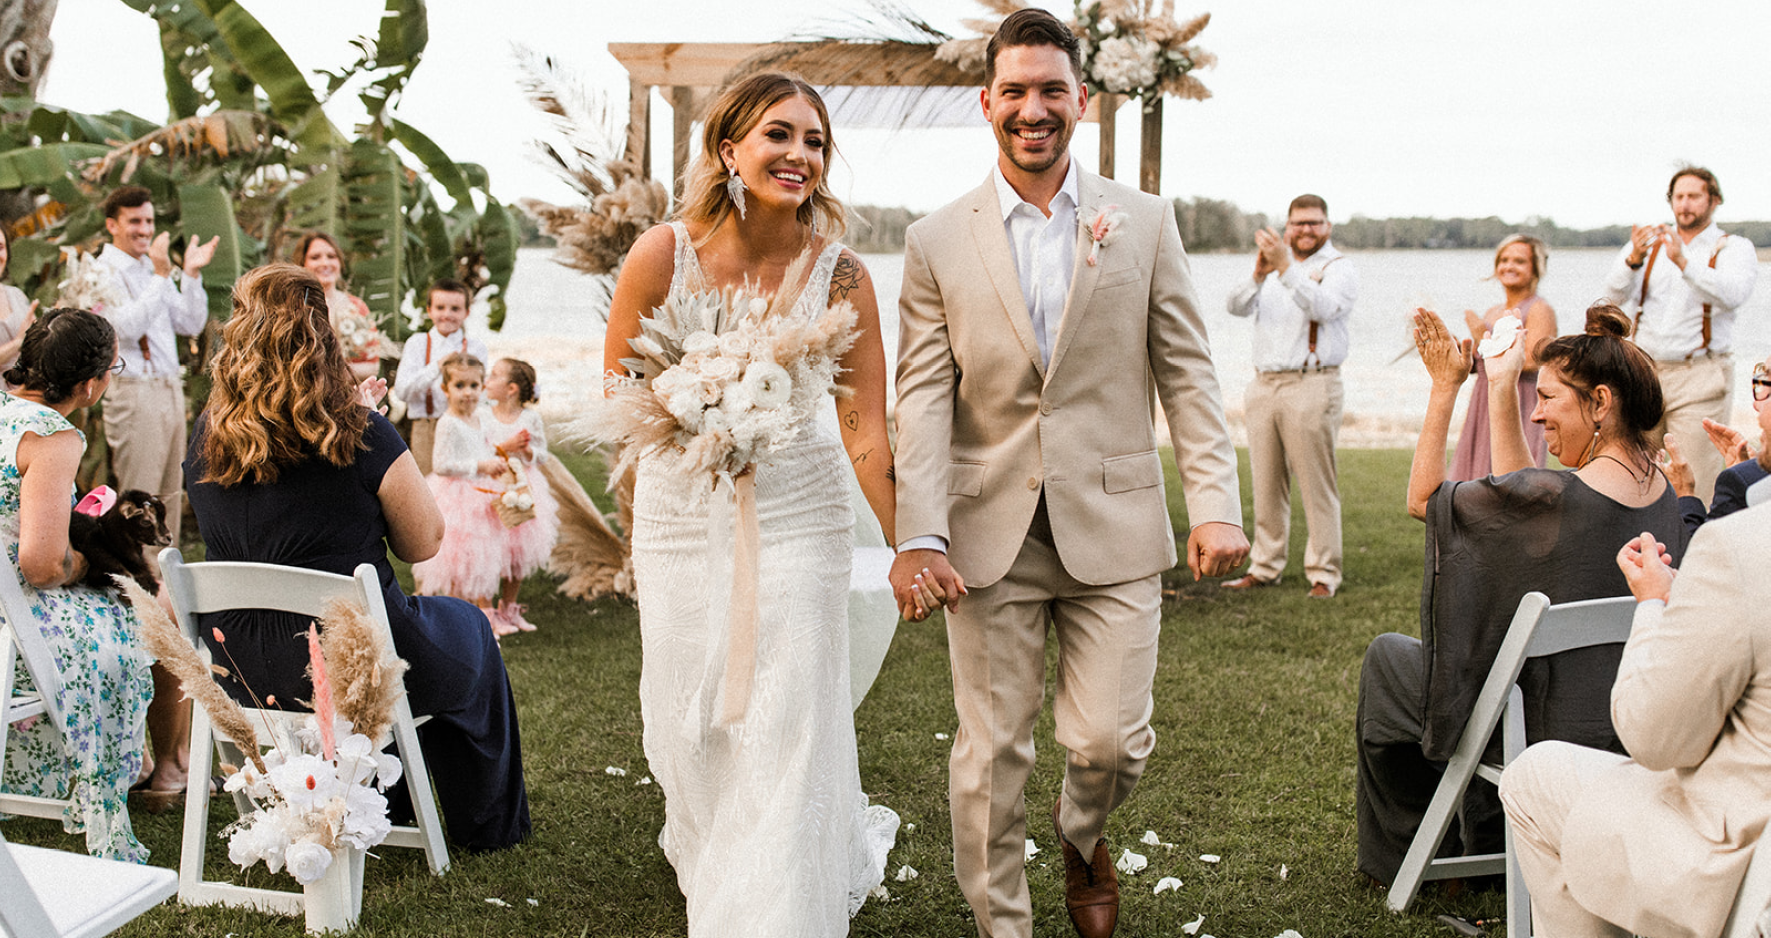 Real Bride Kaley Wearing Maggie Sottero Wedding Dress and Walking Down the Aisle with Groom at Lakeside Wedding